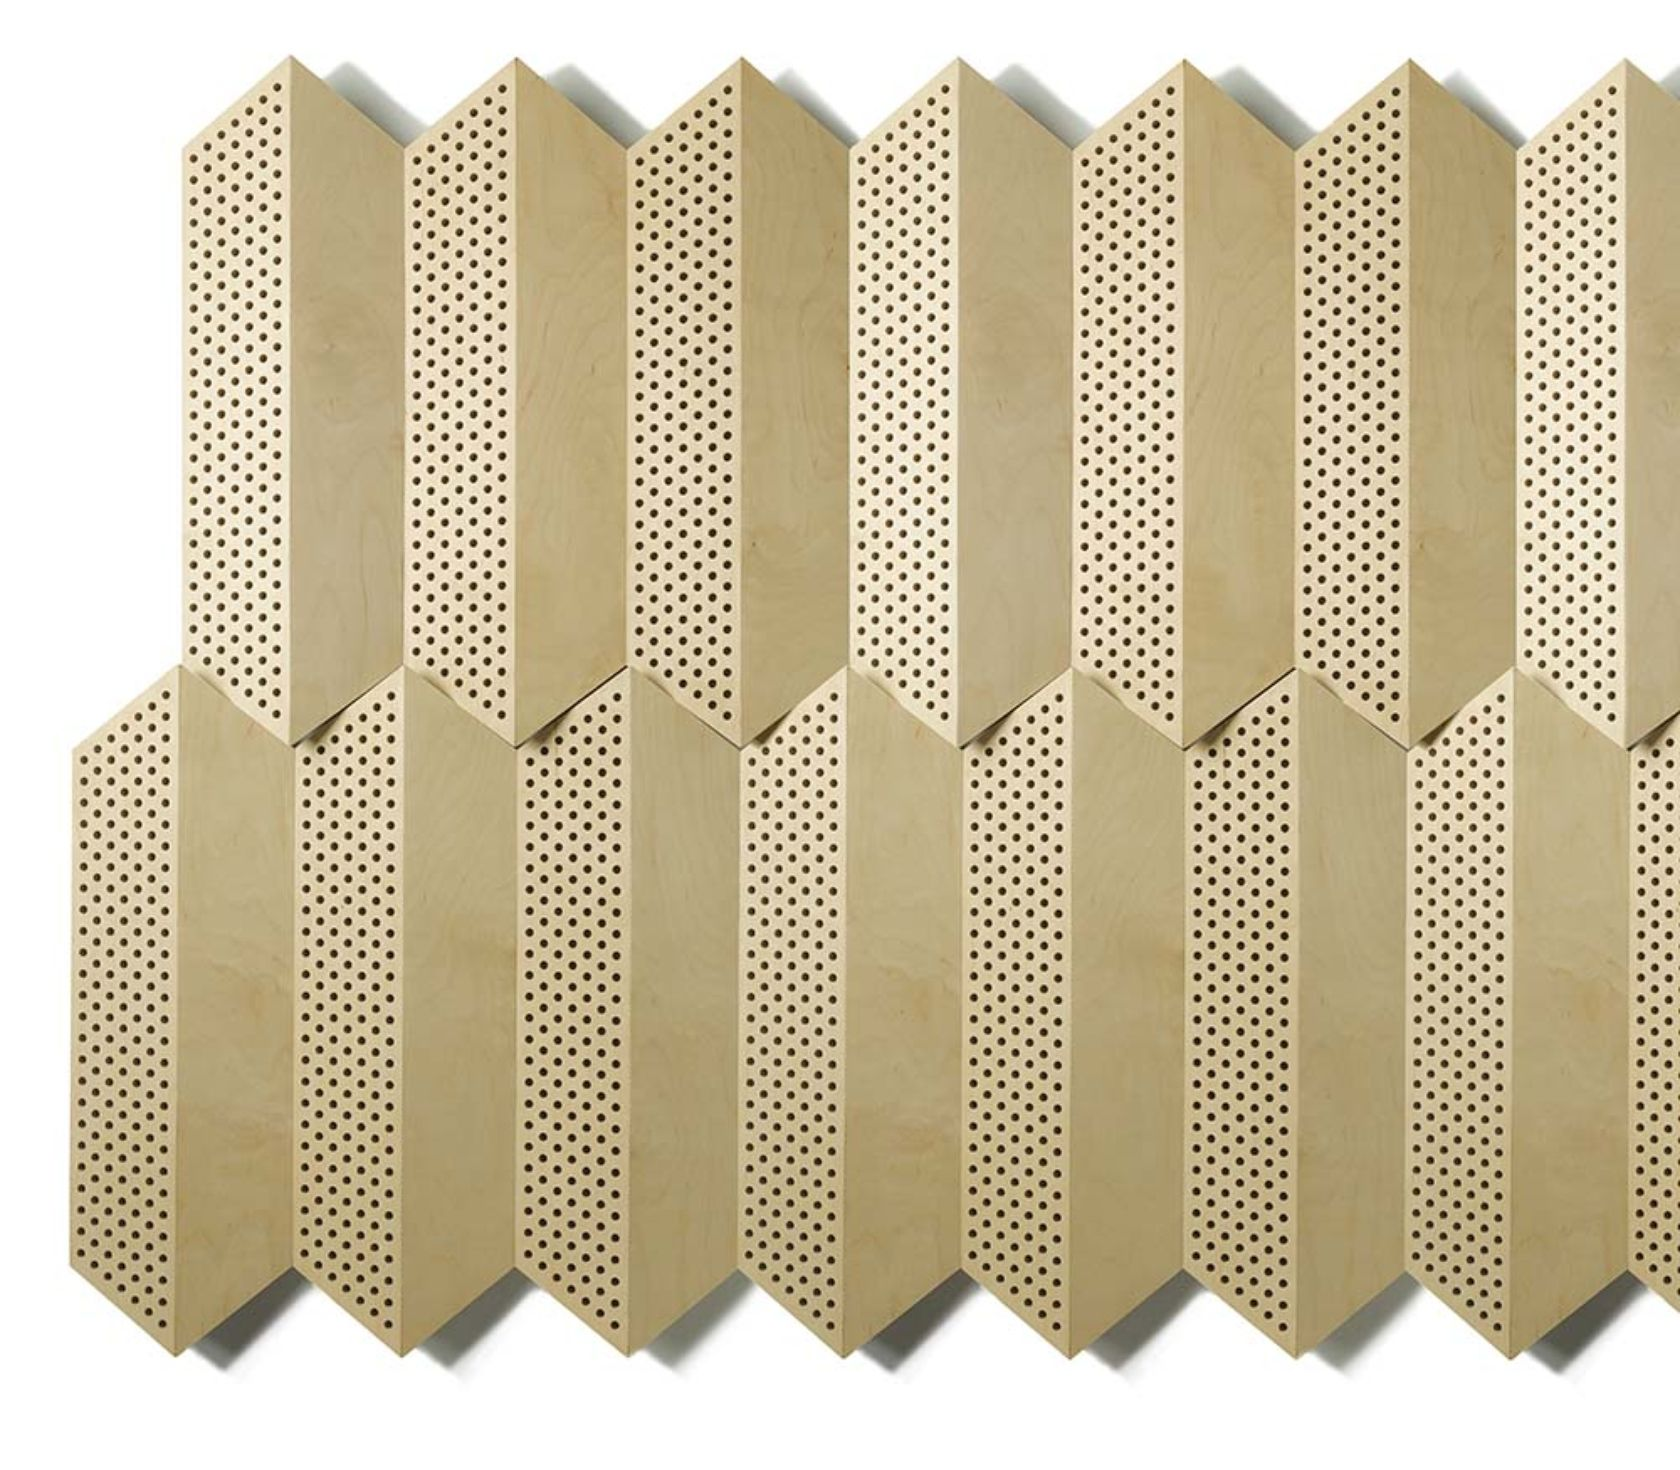 Tessellate Acoustic Wall Panel System Ides 400 2013